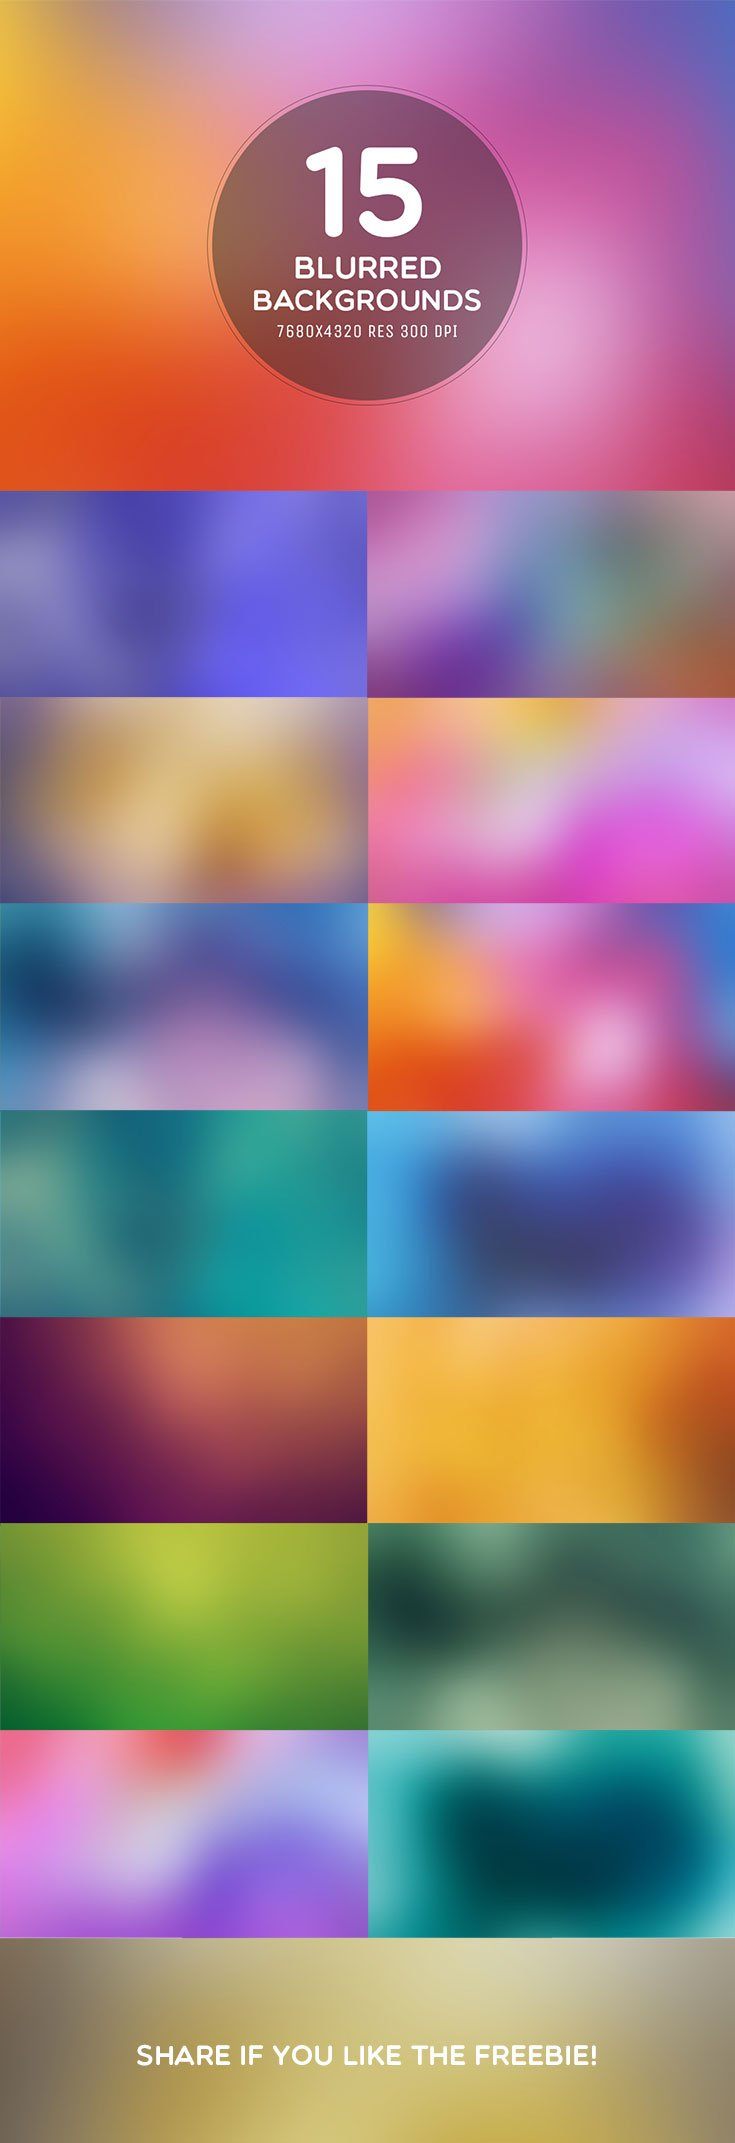 15 Free Blurred 8K Backgrounds pack includes 15 different lovely backgrounds elements with many gradient colors. You can use these on websites, apps etc.